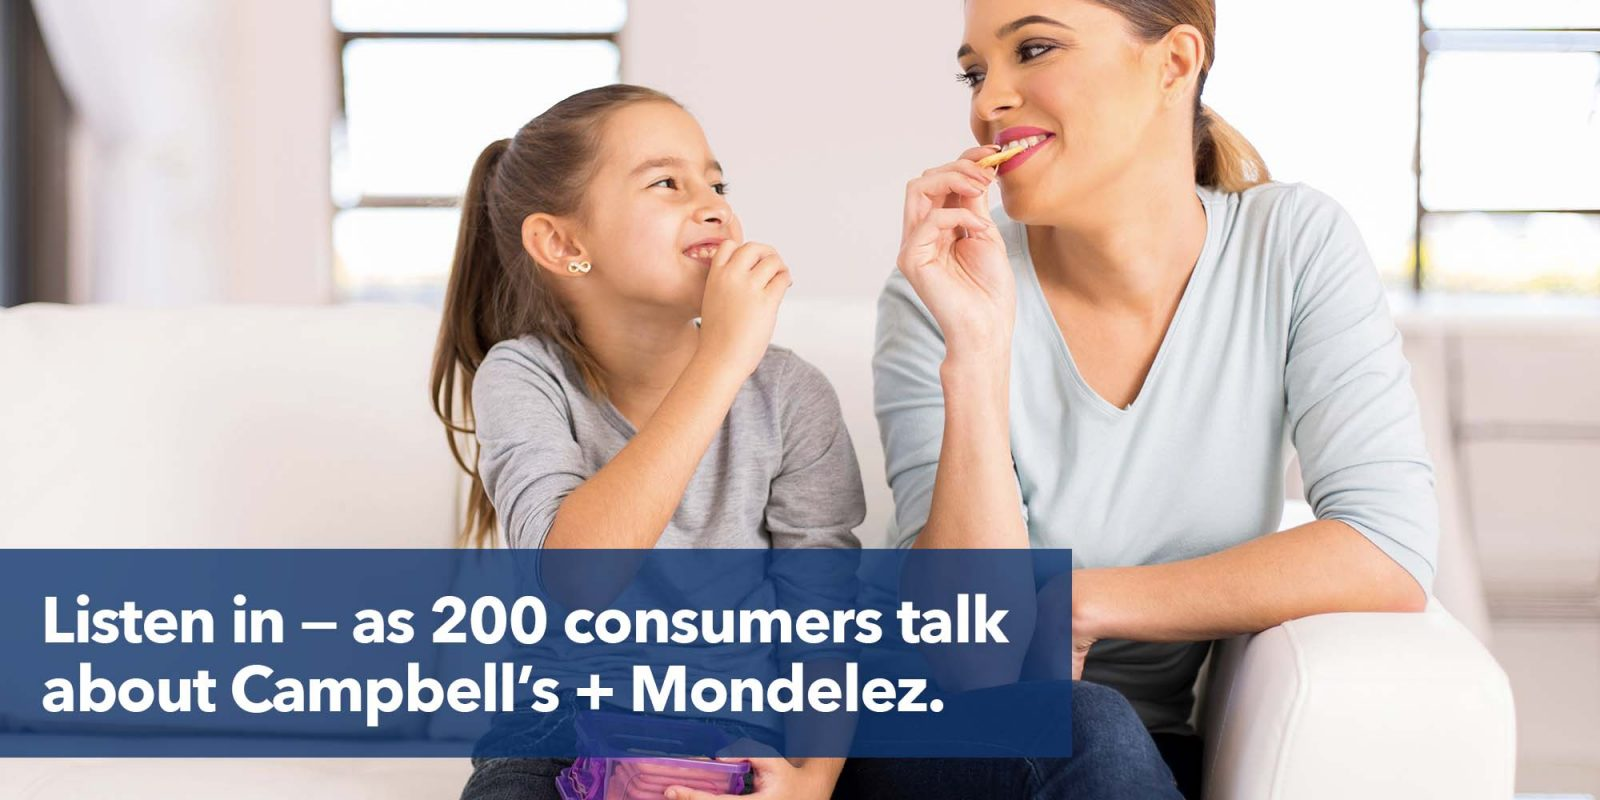 Listen in — as 200 consumers talk about Campbell's + Mondelez.